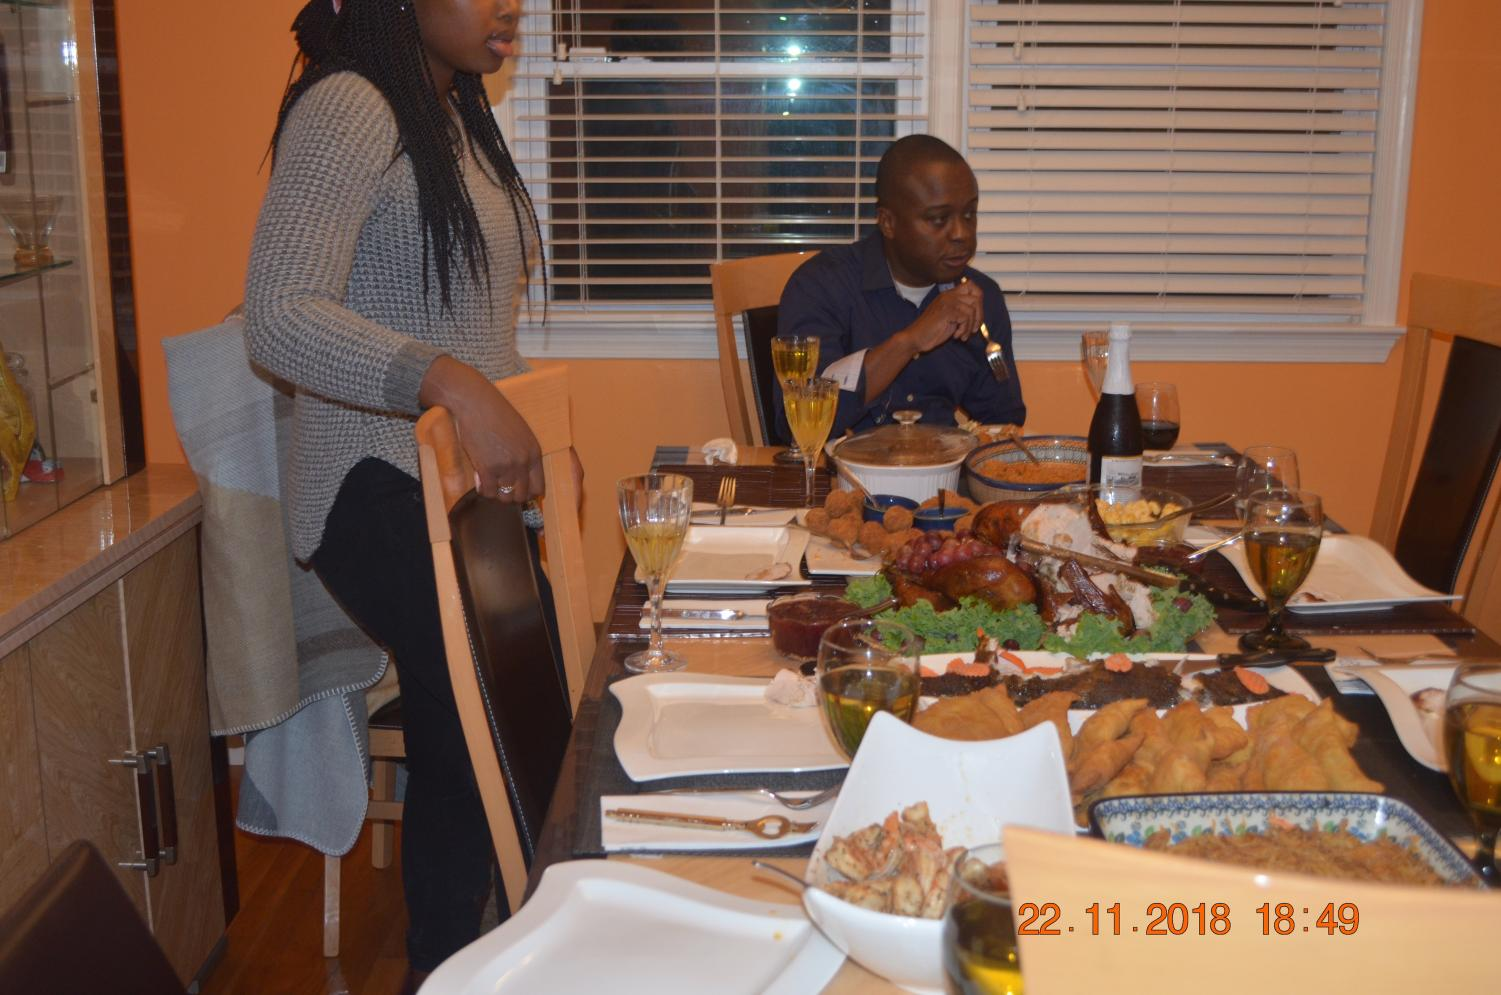 The dining table is set fora typical Thanksgiving dinner.